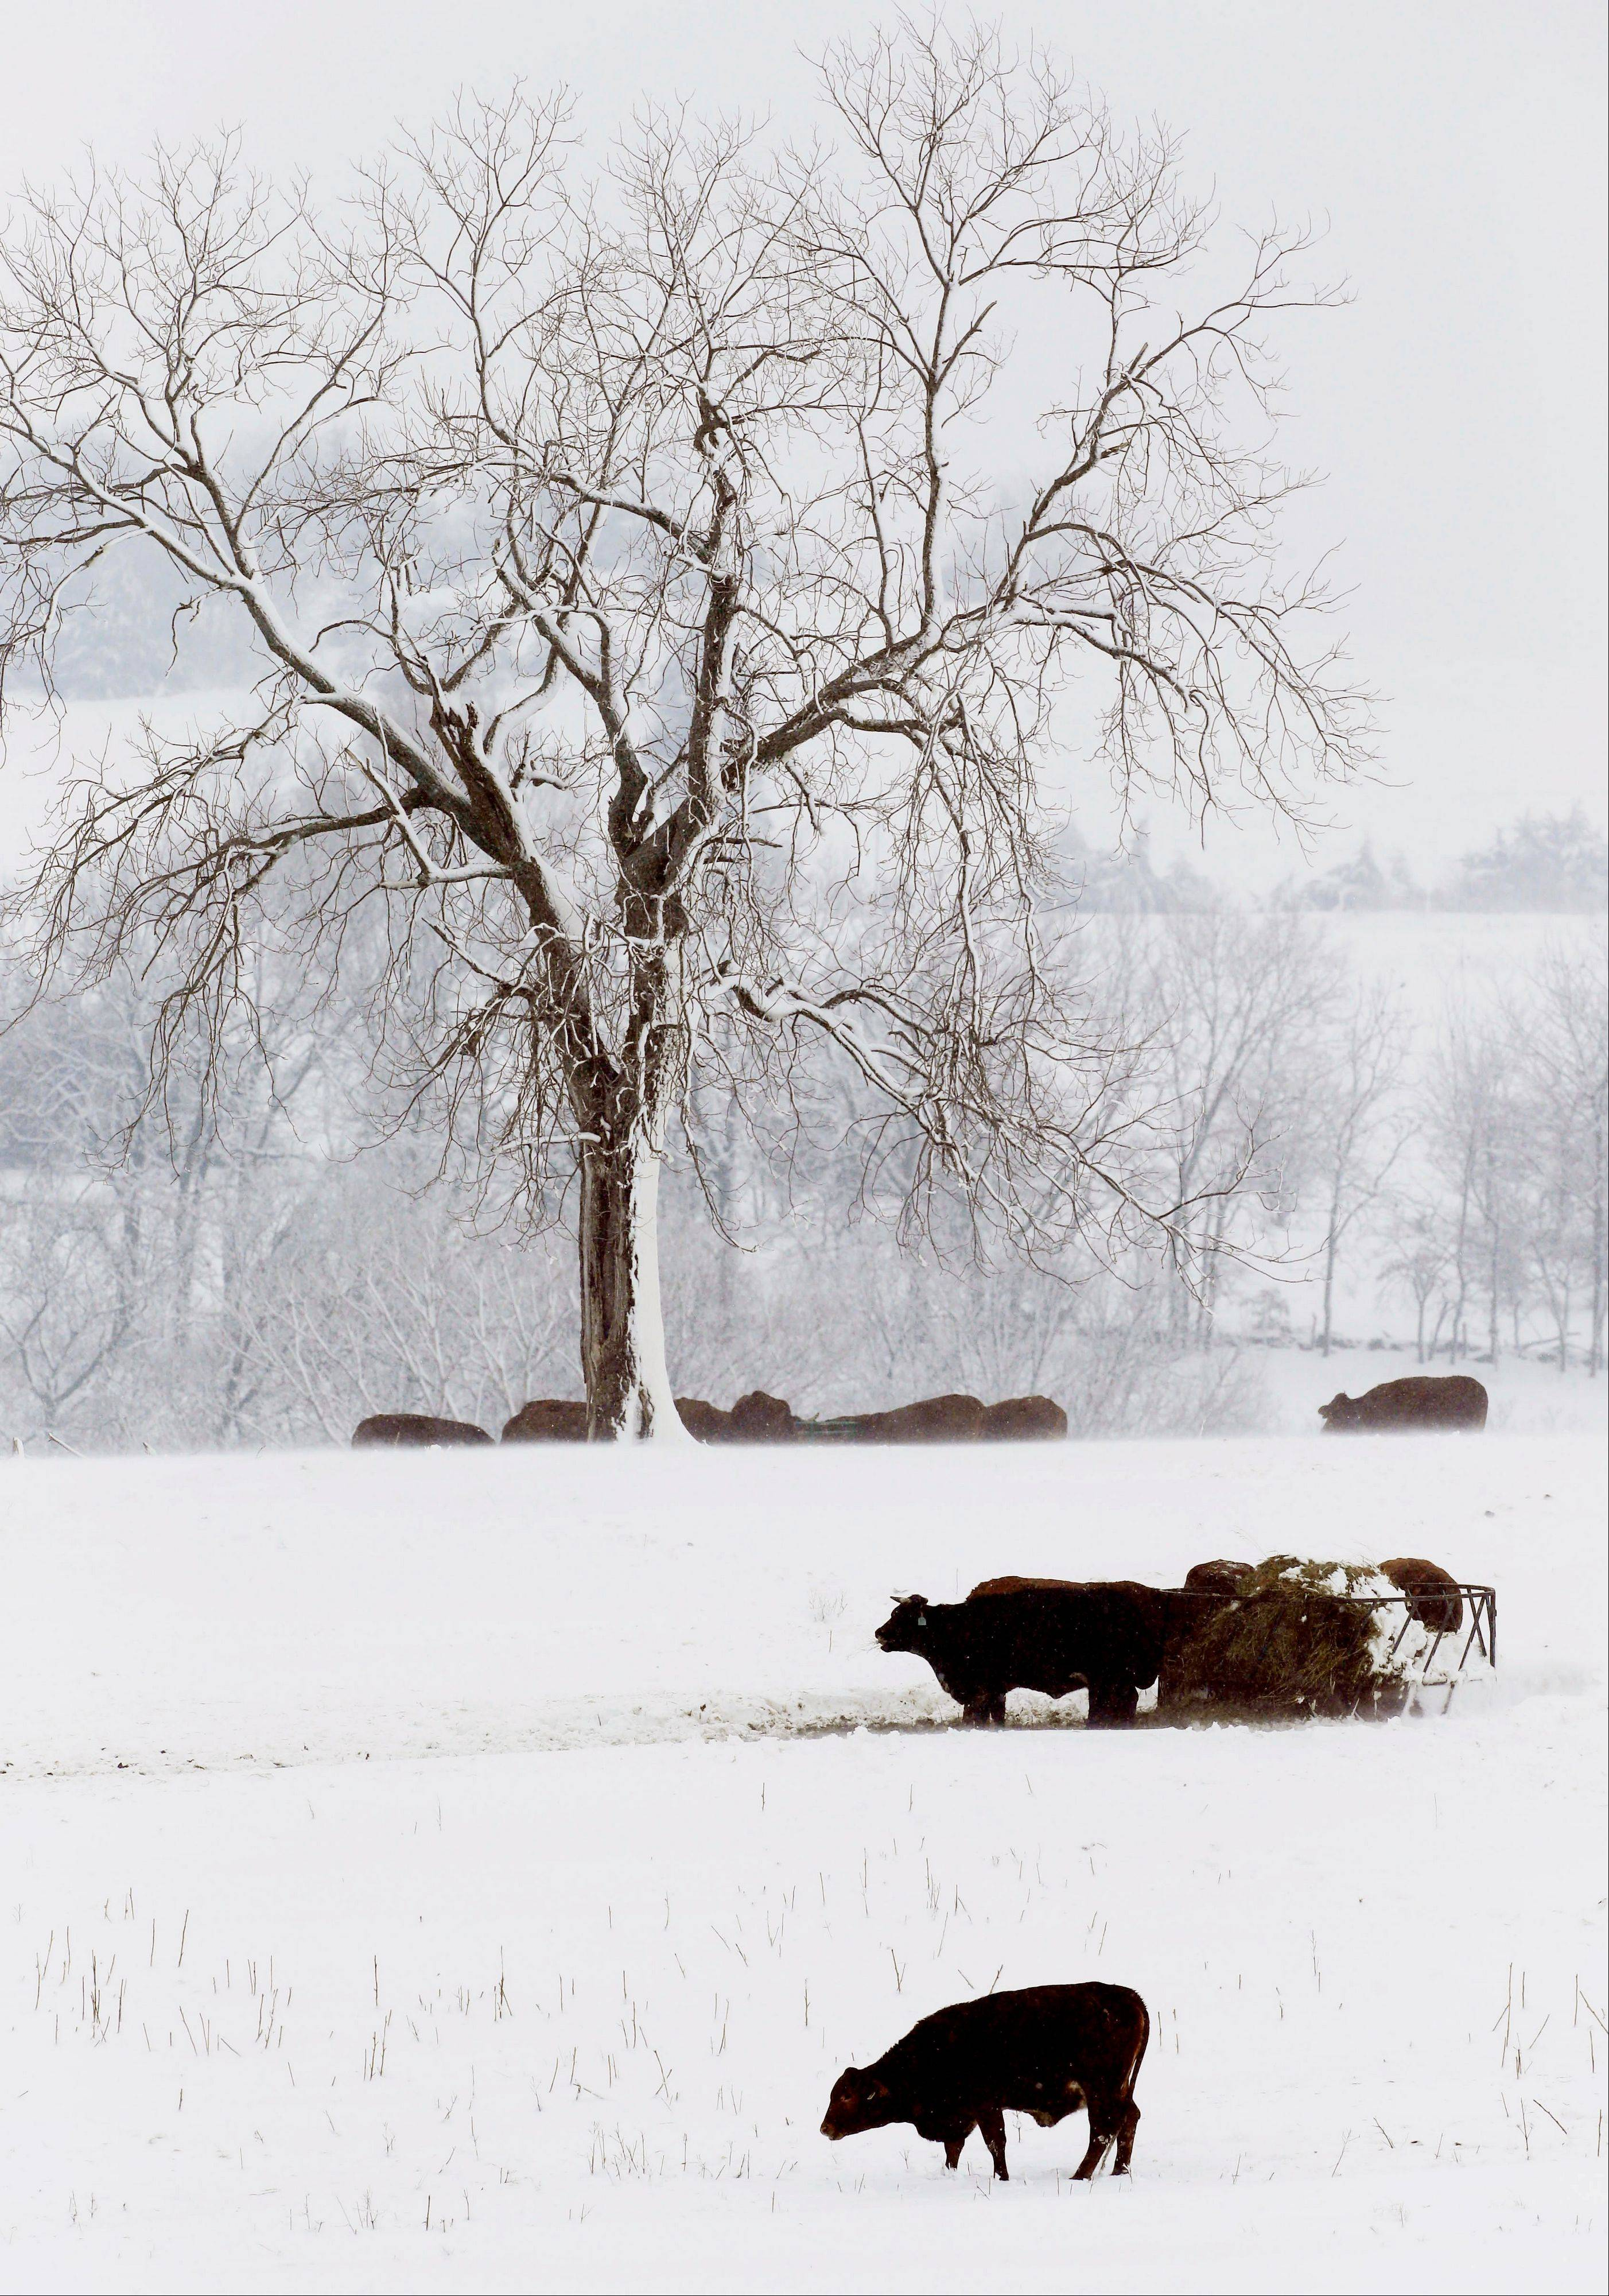 Cattle feed Tuesday in a snow covered pasture near Lecompton, Kansas. Farmers welcome the snow over moisture-starved soil.